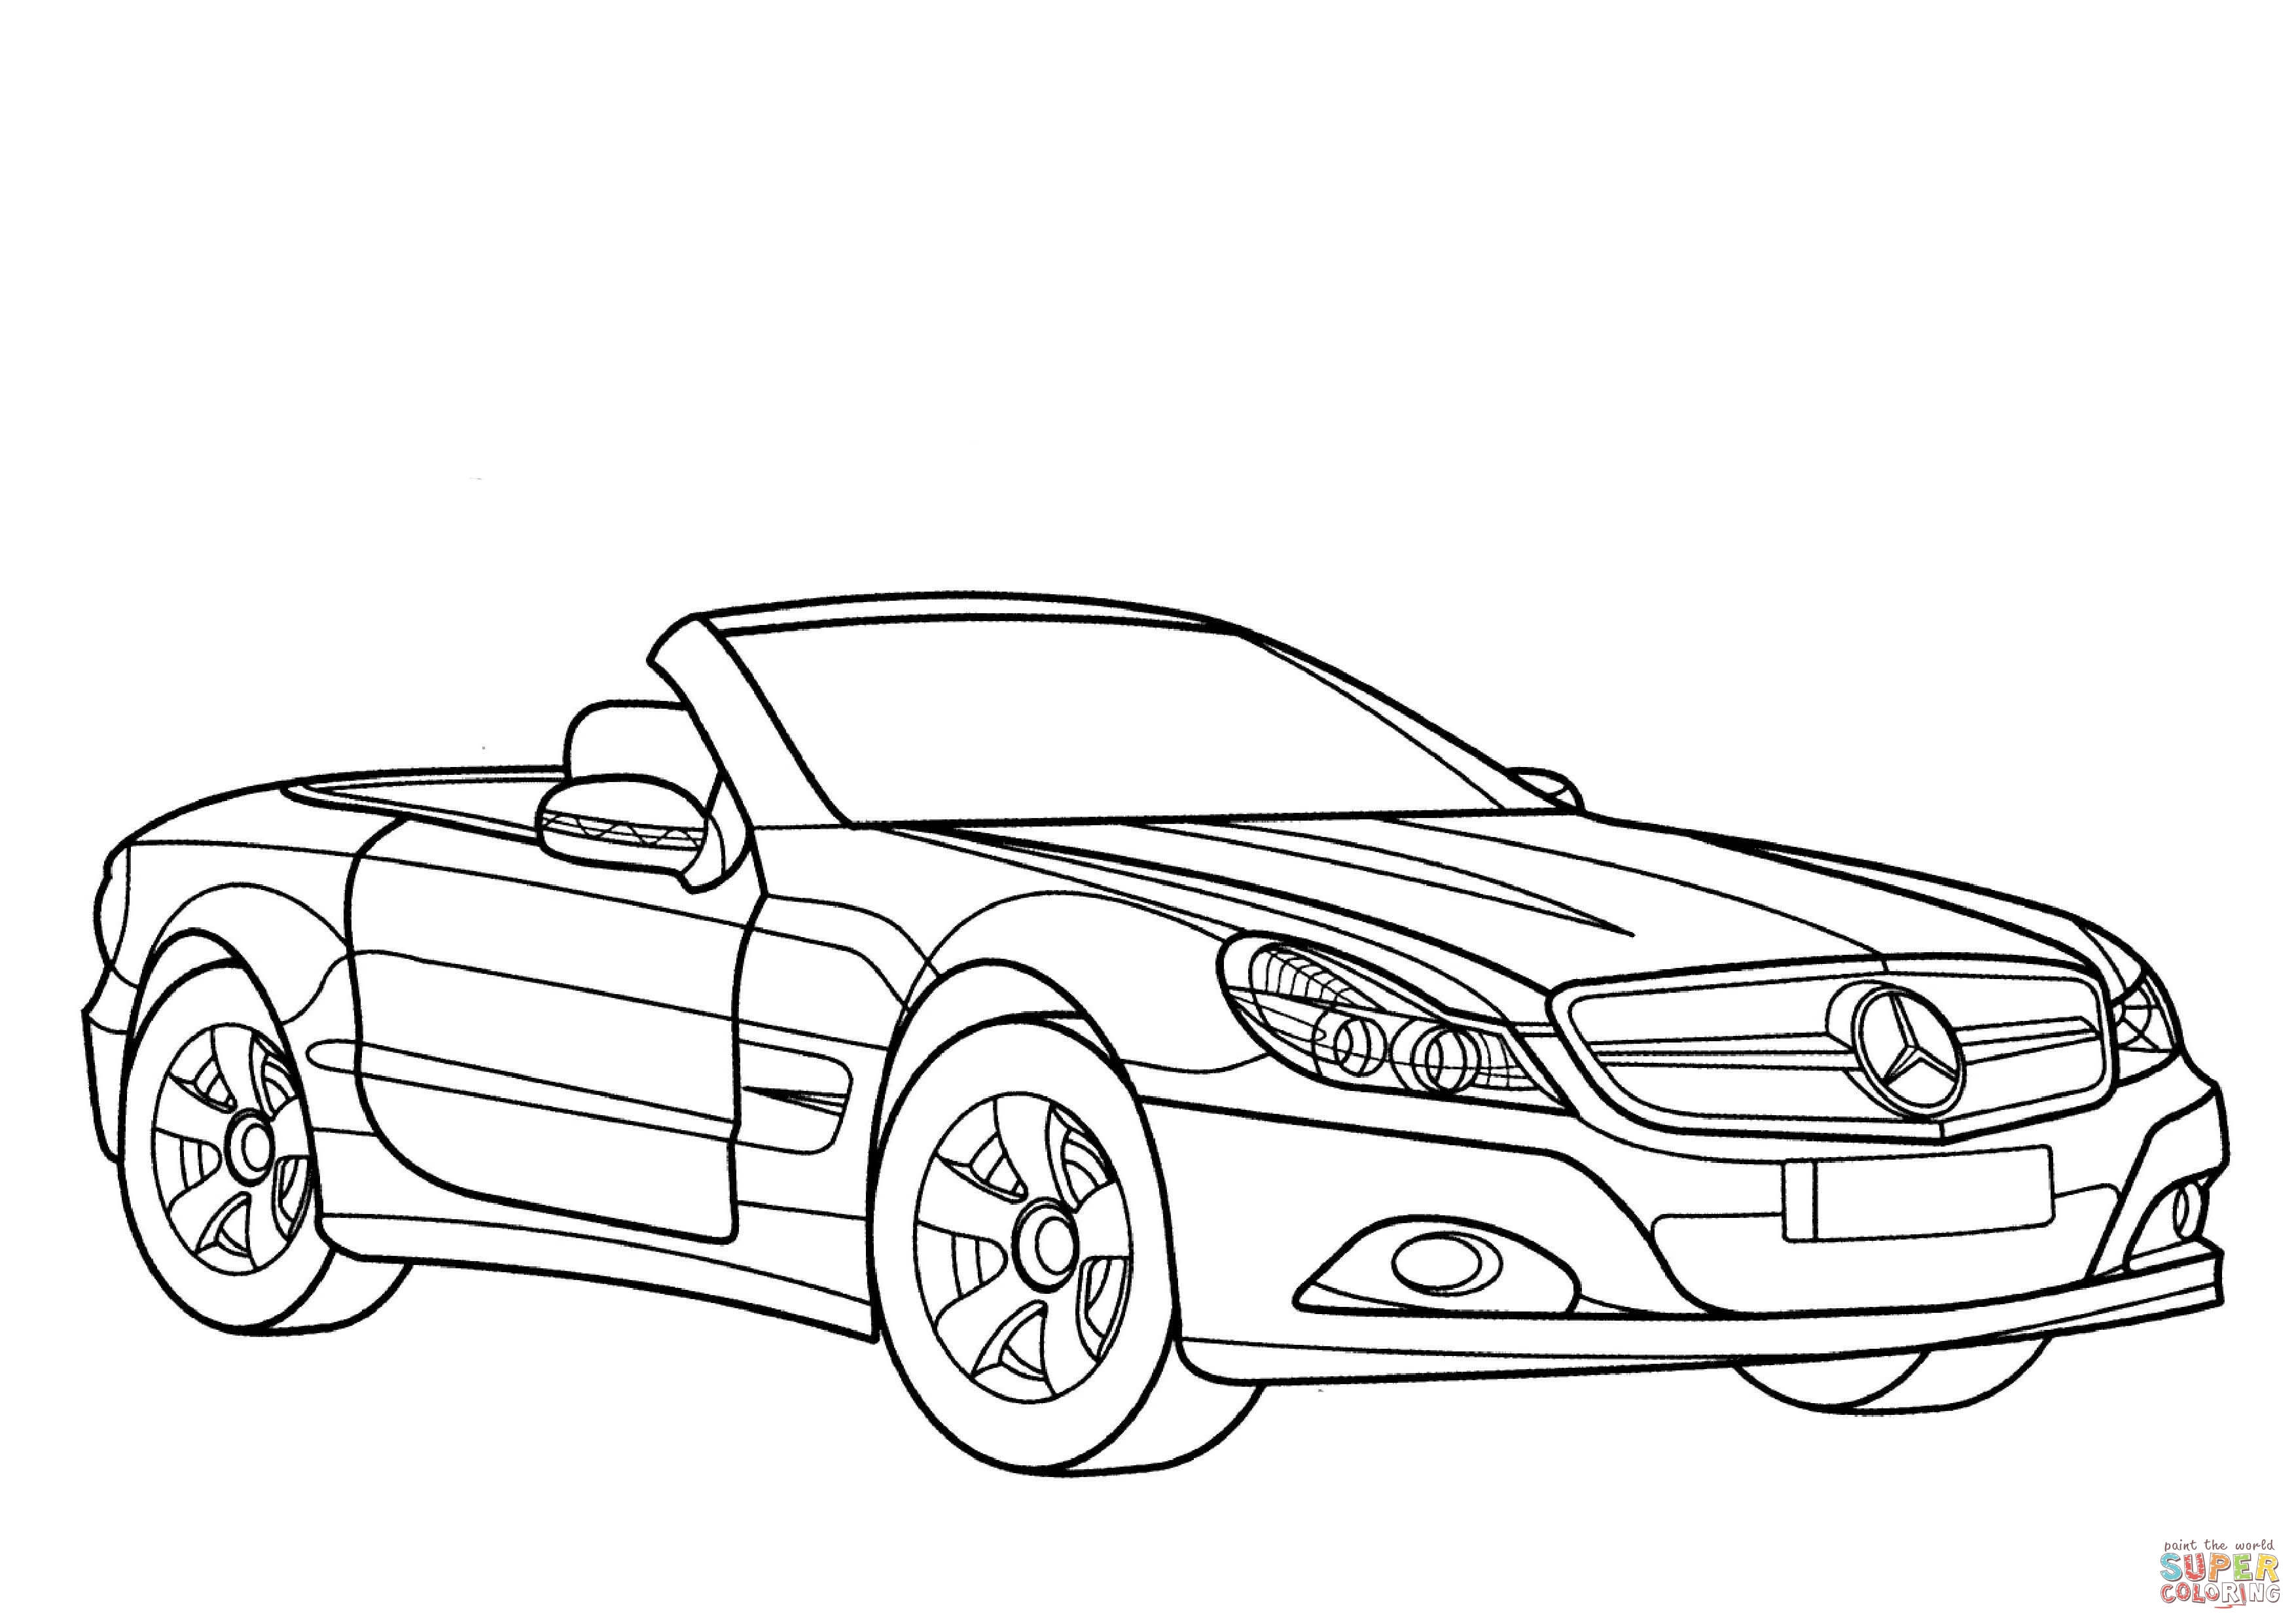 mercedes benz coloring sheets mercedes benz c class wagon coloring page free printable mercedes benz sheets coloring